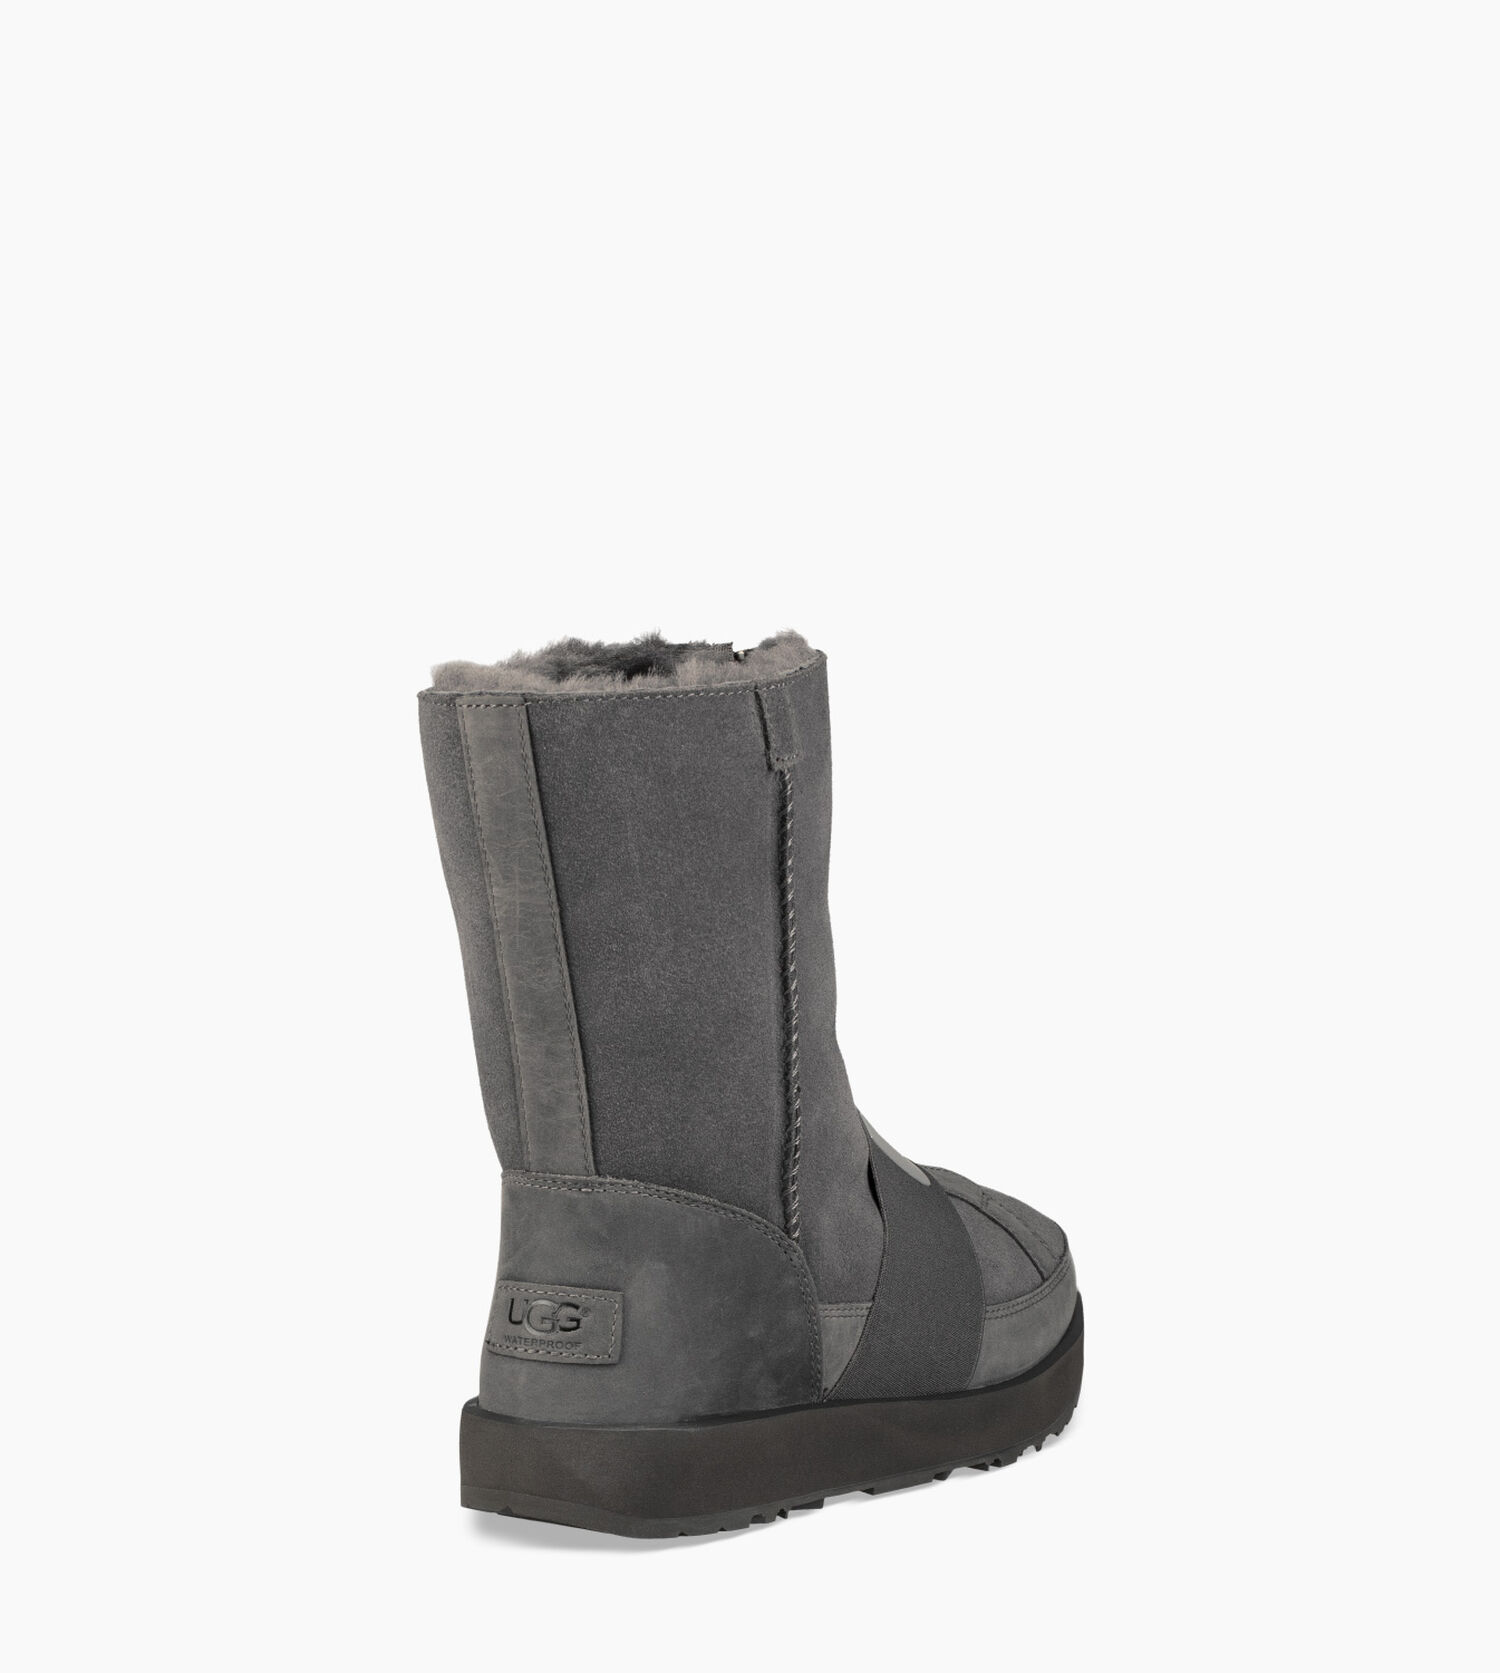 aabcb0b9825 Women's Share this product Conness Waterproof Boot